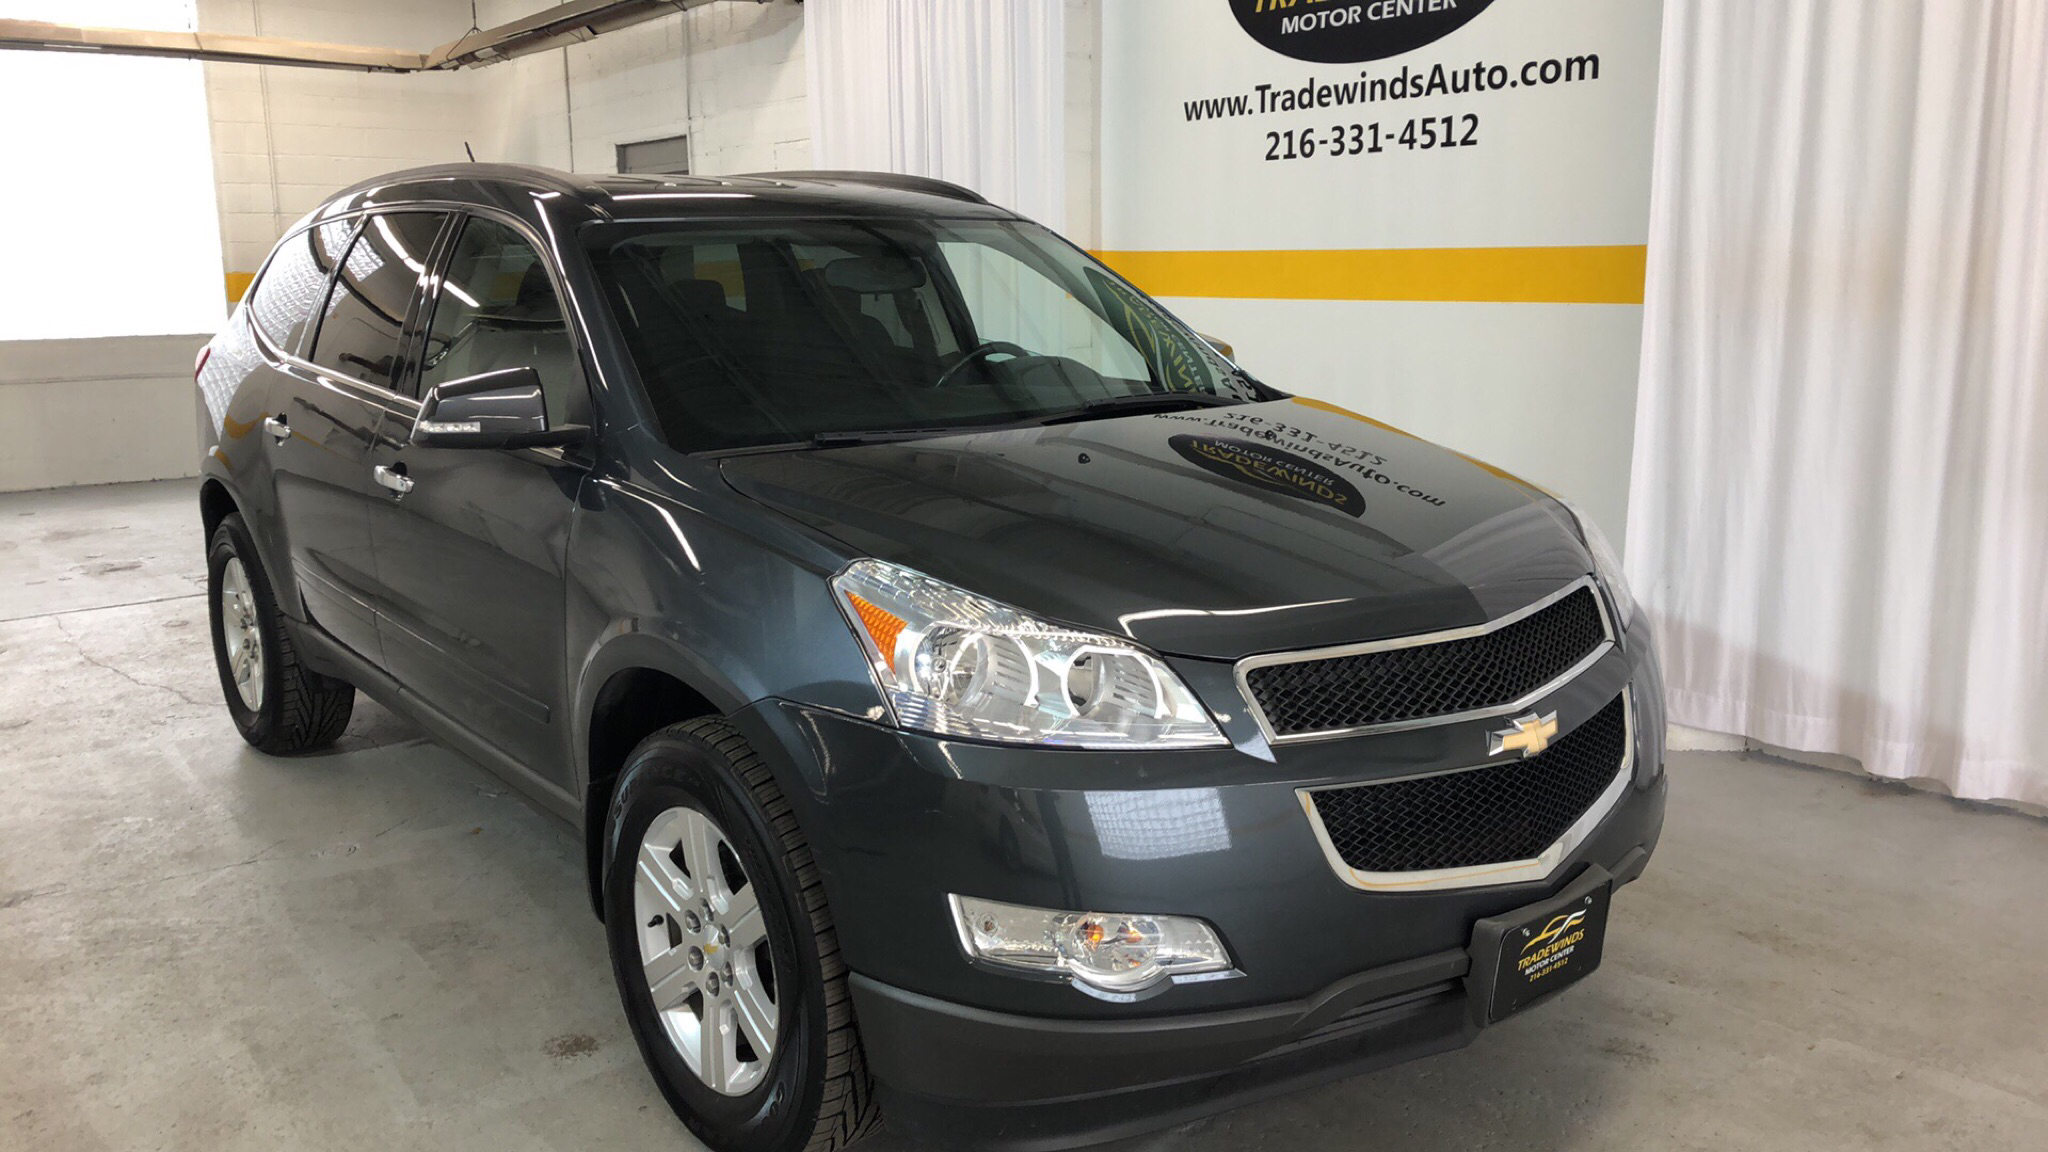 2010 CHEVROLET TRAVERSE LT for sale at Tradewinds Motor Center